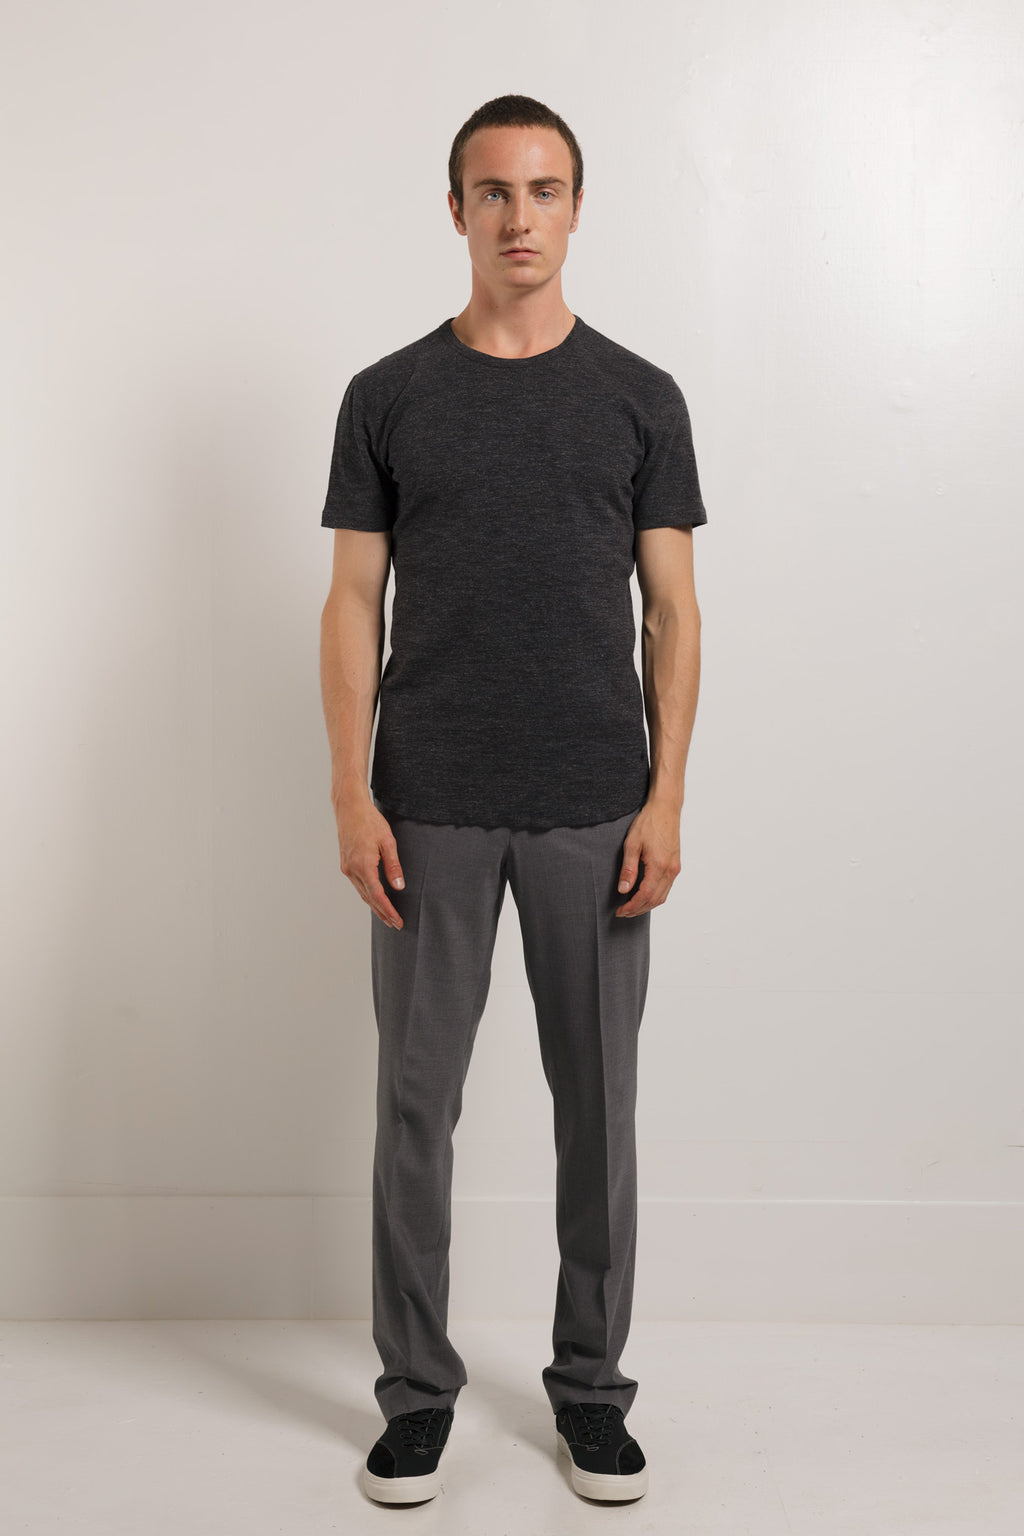 Slub 1x1 tee in Charcoal flat-lay